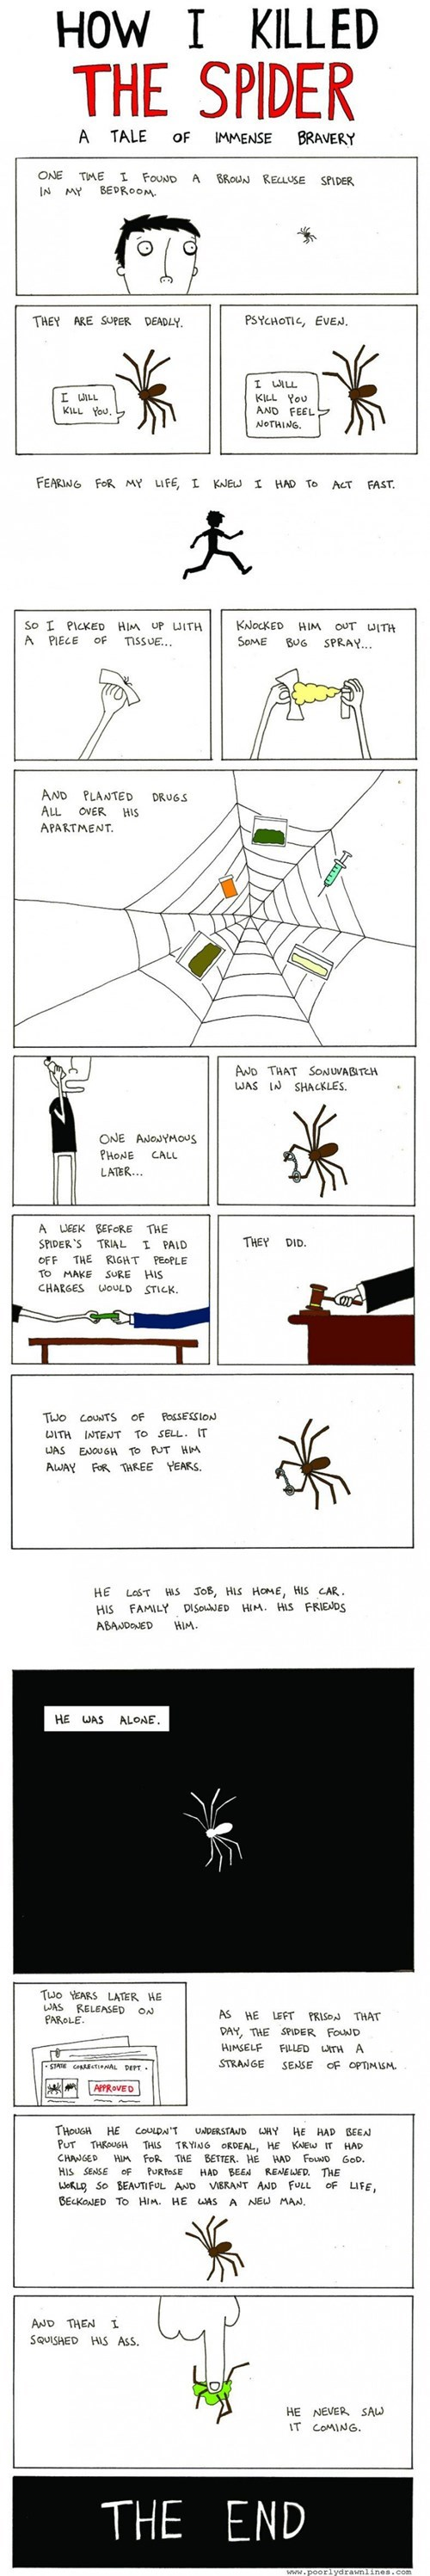 brown recluse jail spiders sad but true yikes web comics - 8354995200